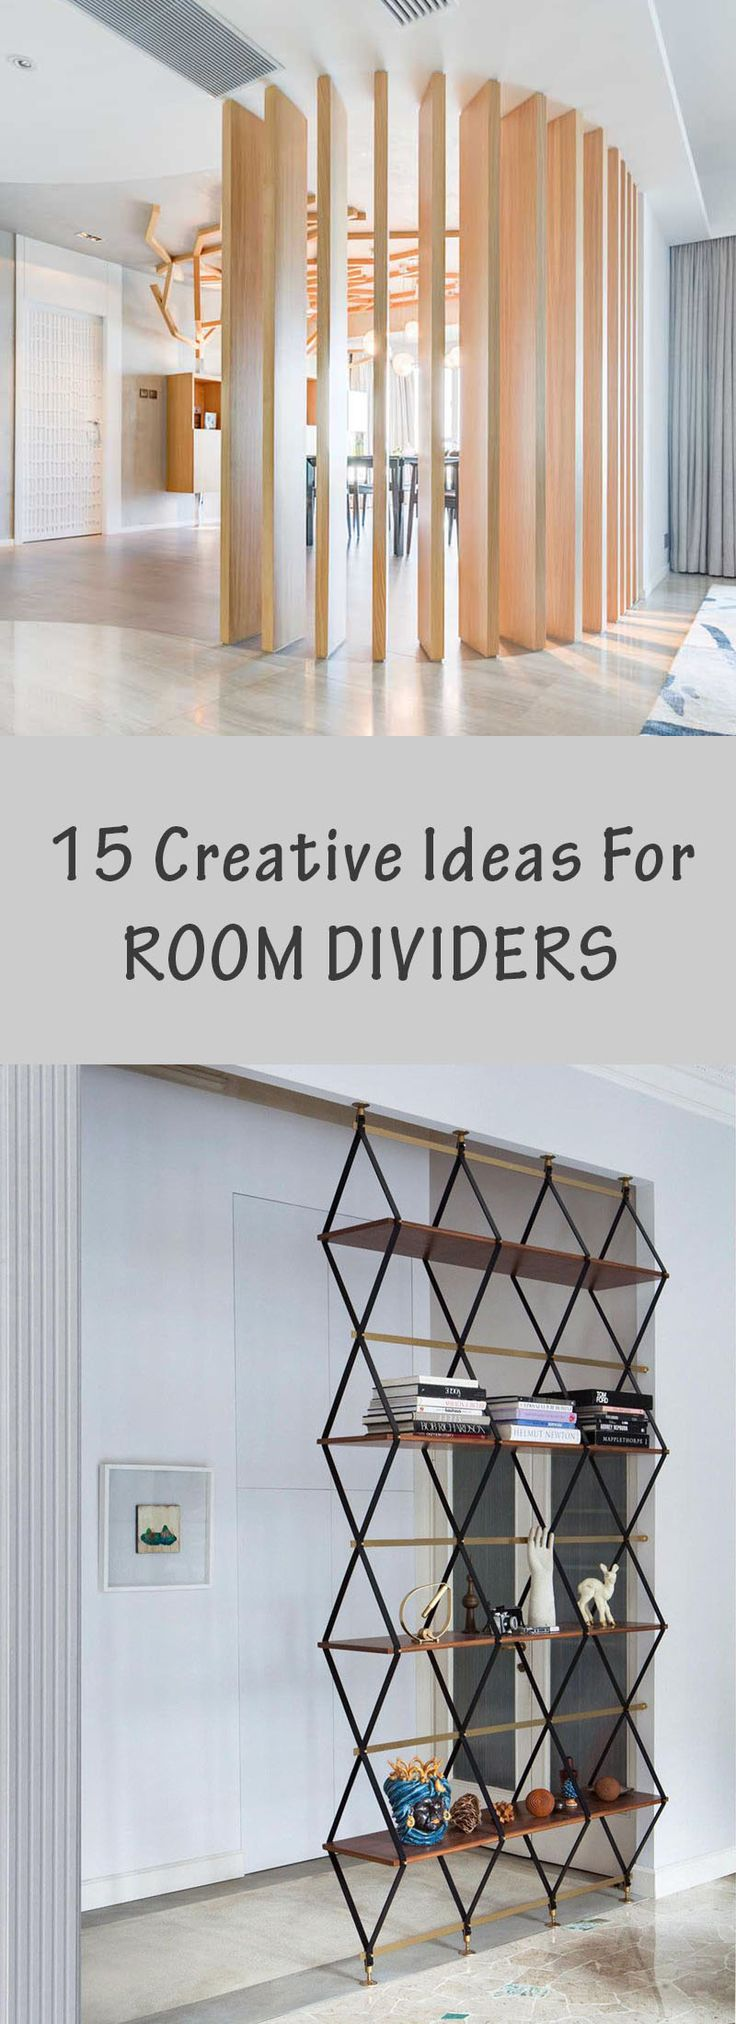 Room Devider Ideas Best 25 Room Dividers Ideas On Pinterest  Tree Branches